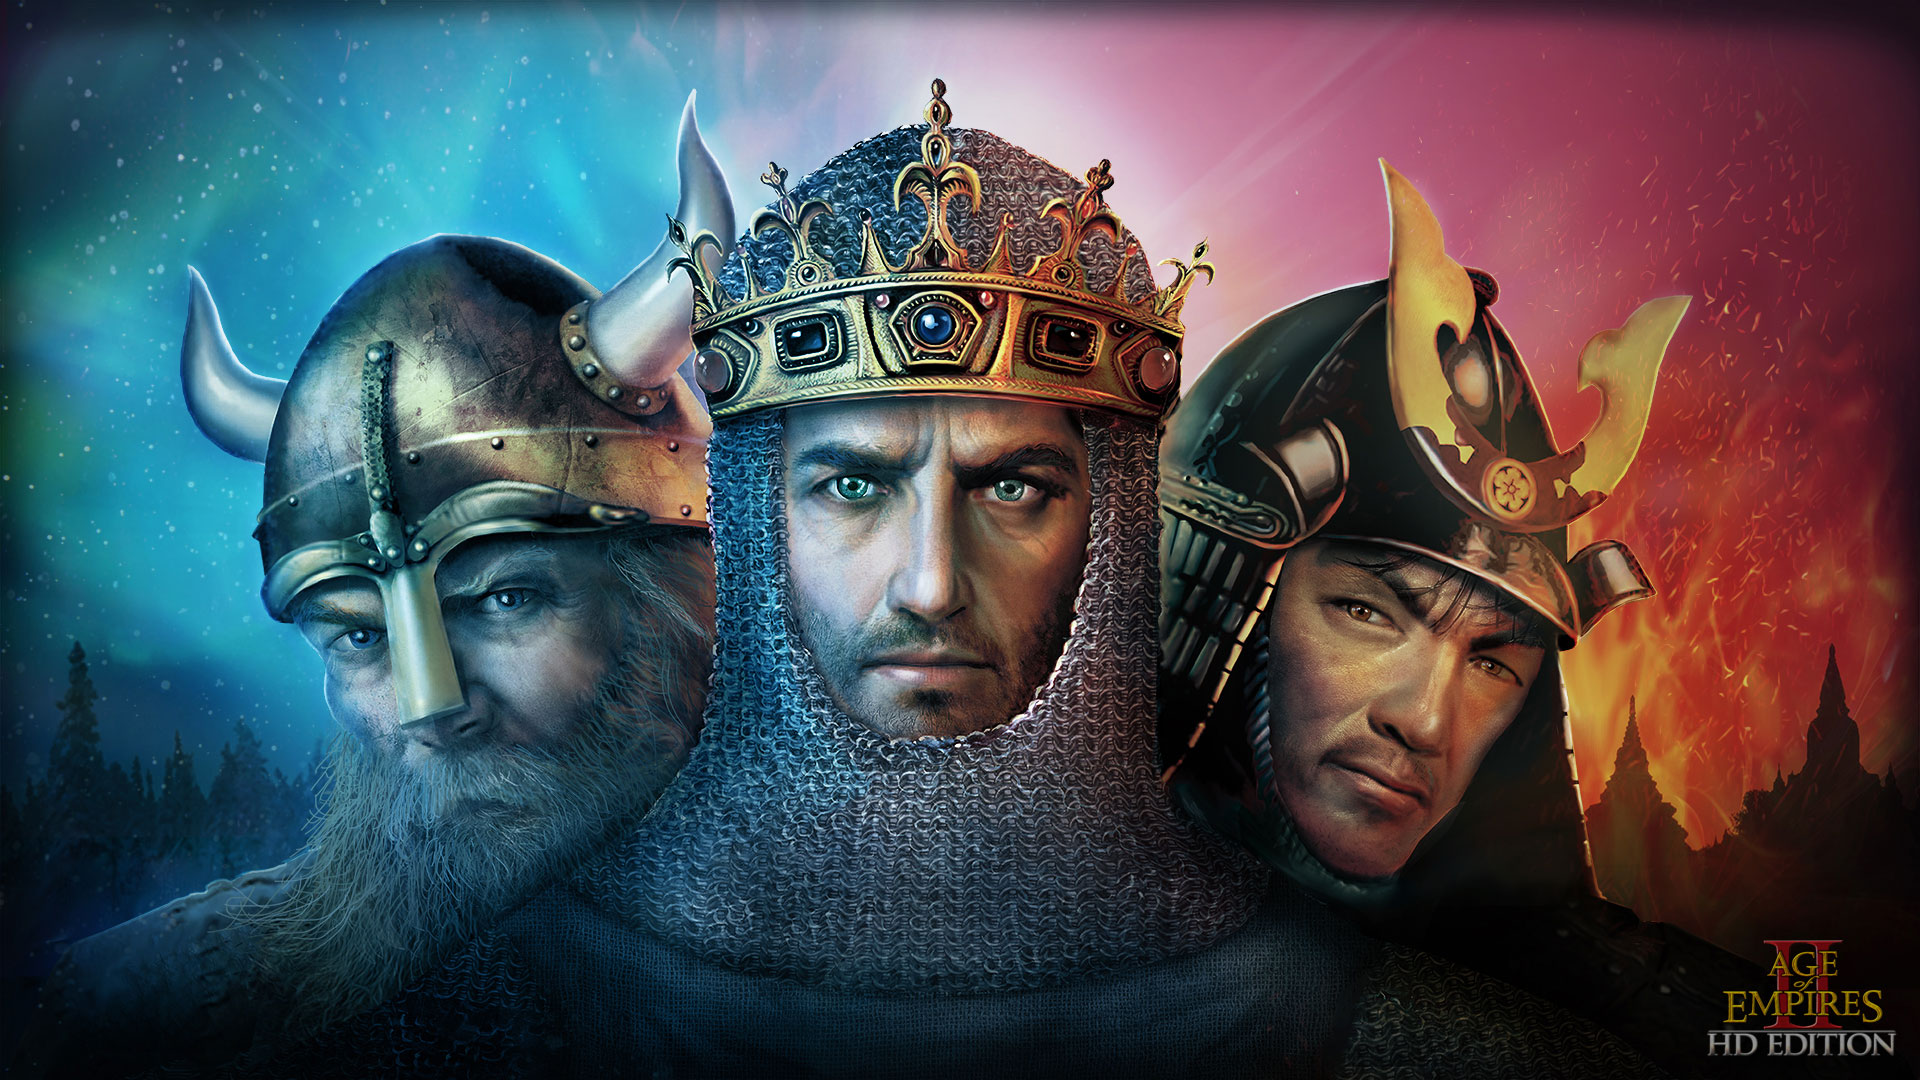 Age of Empires cover Wallpaper